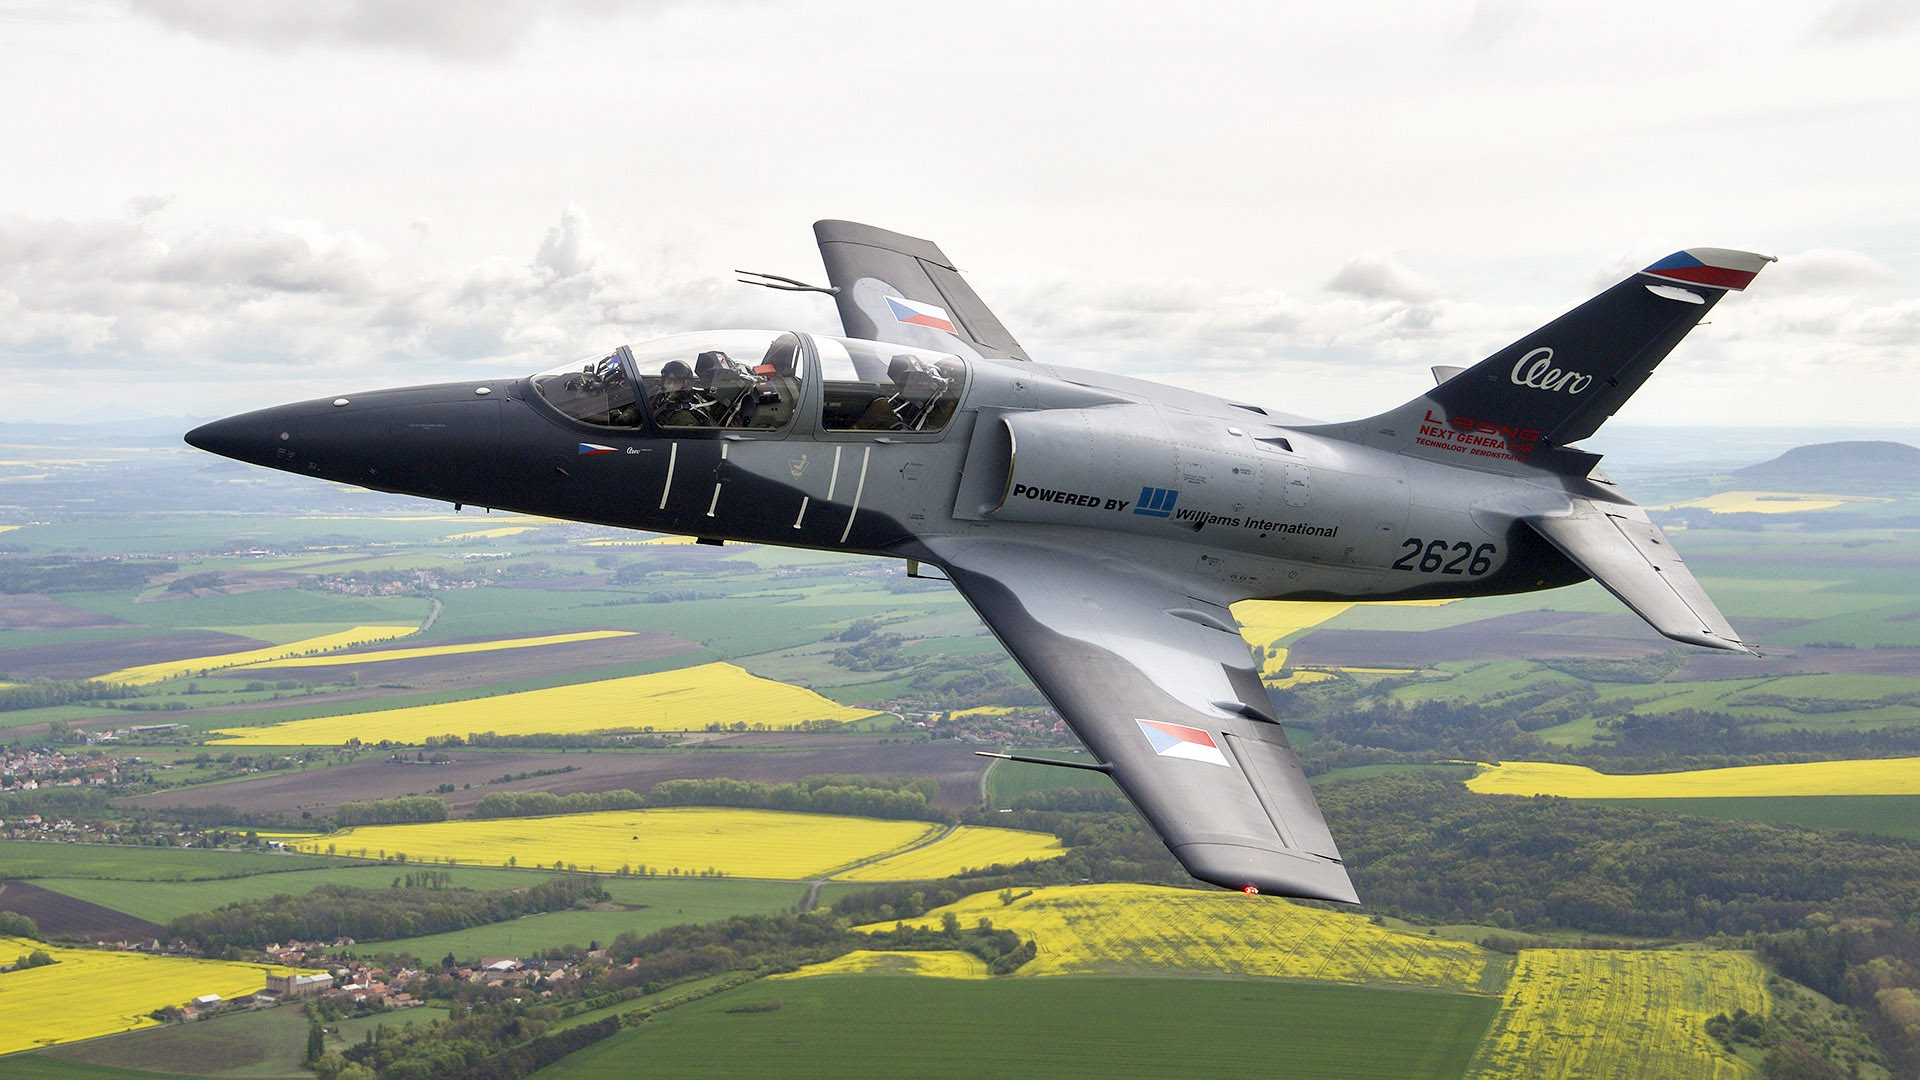 The new Czech jet aircraft L-39NG rolled out - Armada International